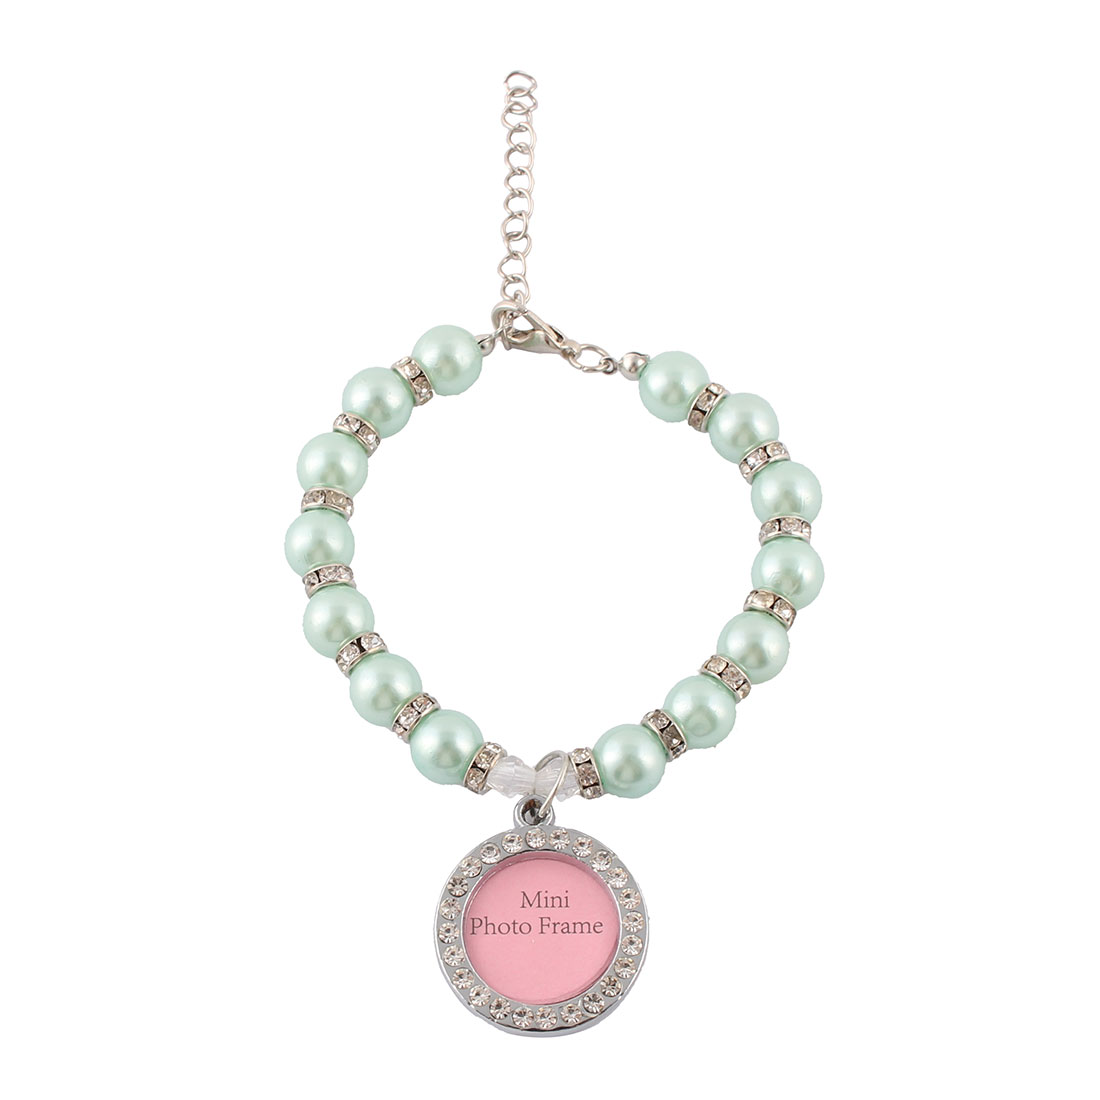 Festival Dog Cat Imitation Pearl Bling Rhinestone Round Photo Frame Pendant Pet Necklace Blue